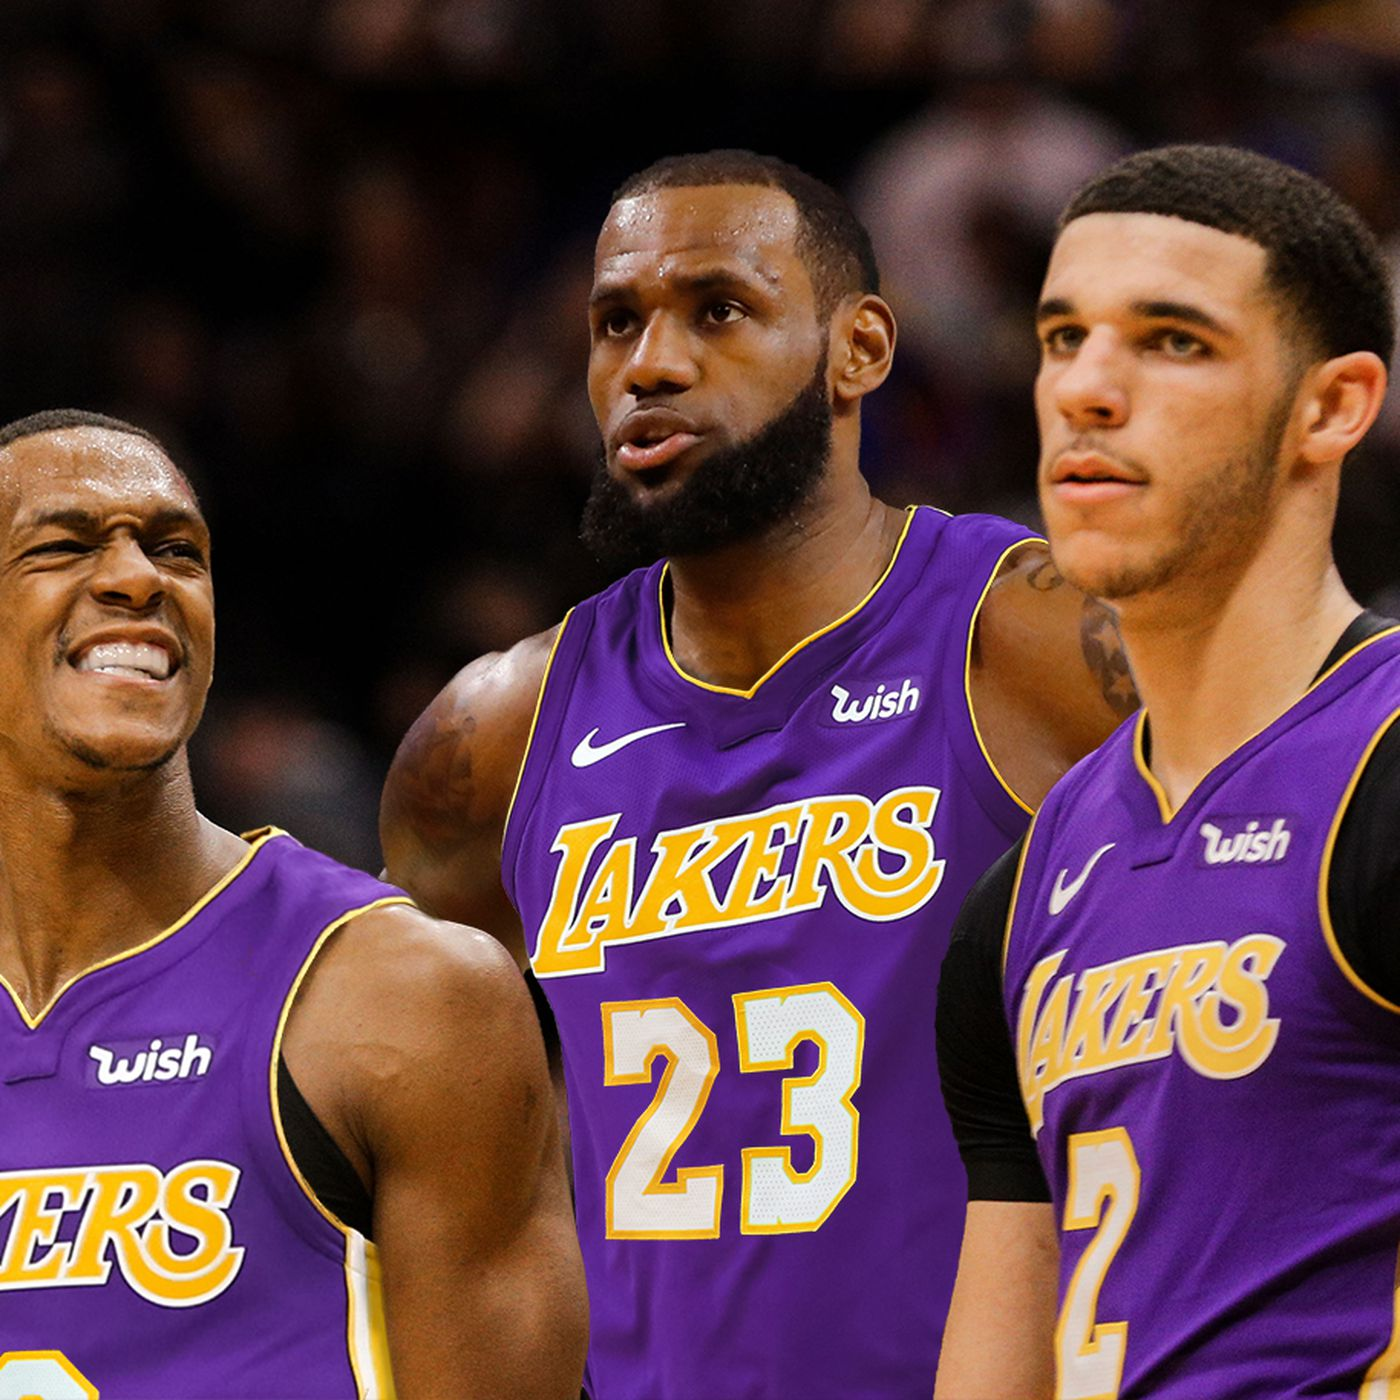 outlet store 0a5bc d5e94 Lakers Video: LeBron James, Lonzo Ball, & Rajon Rondo - Best ...